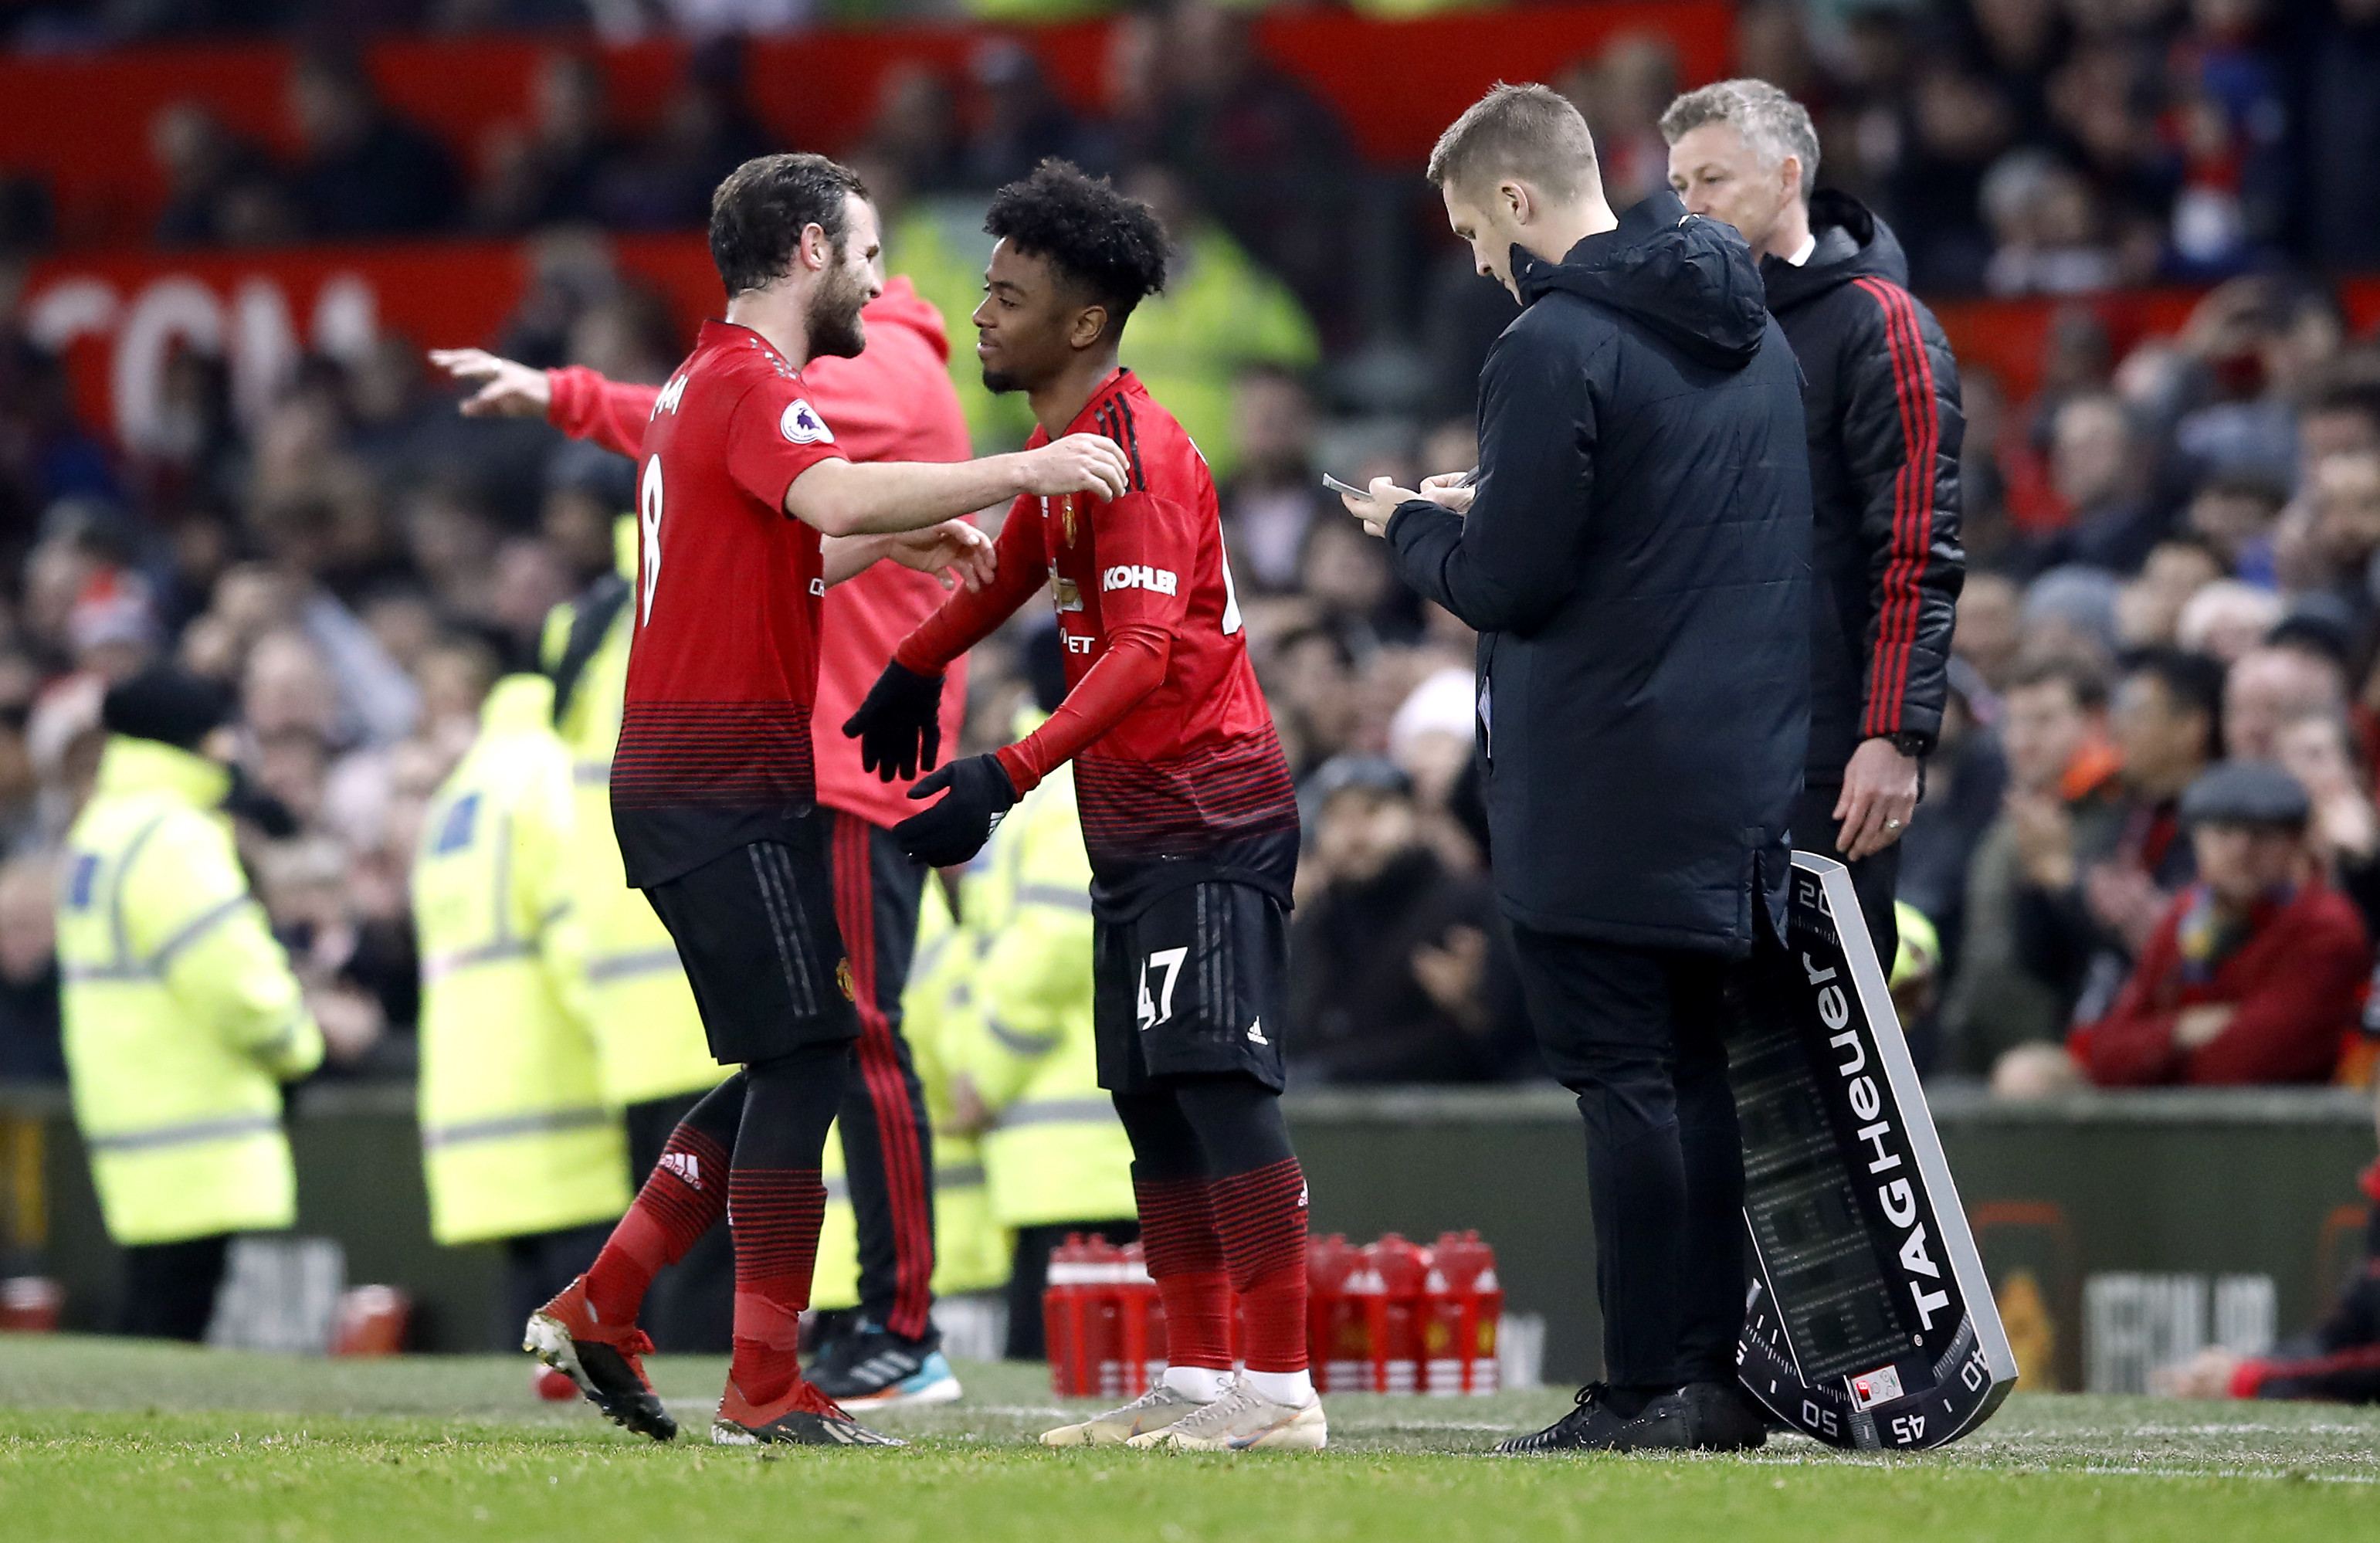 Gomes coming on for Mata earlier this season. Image: PA Images